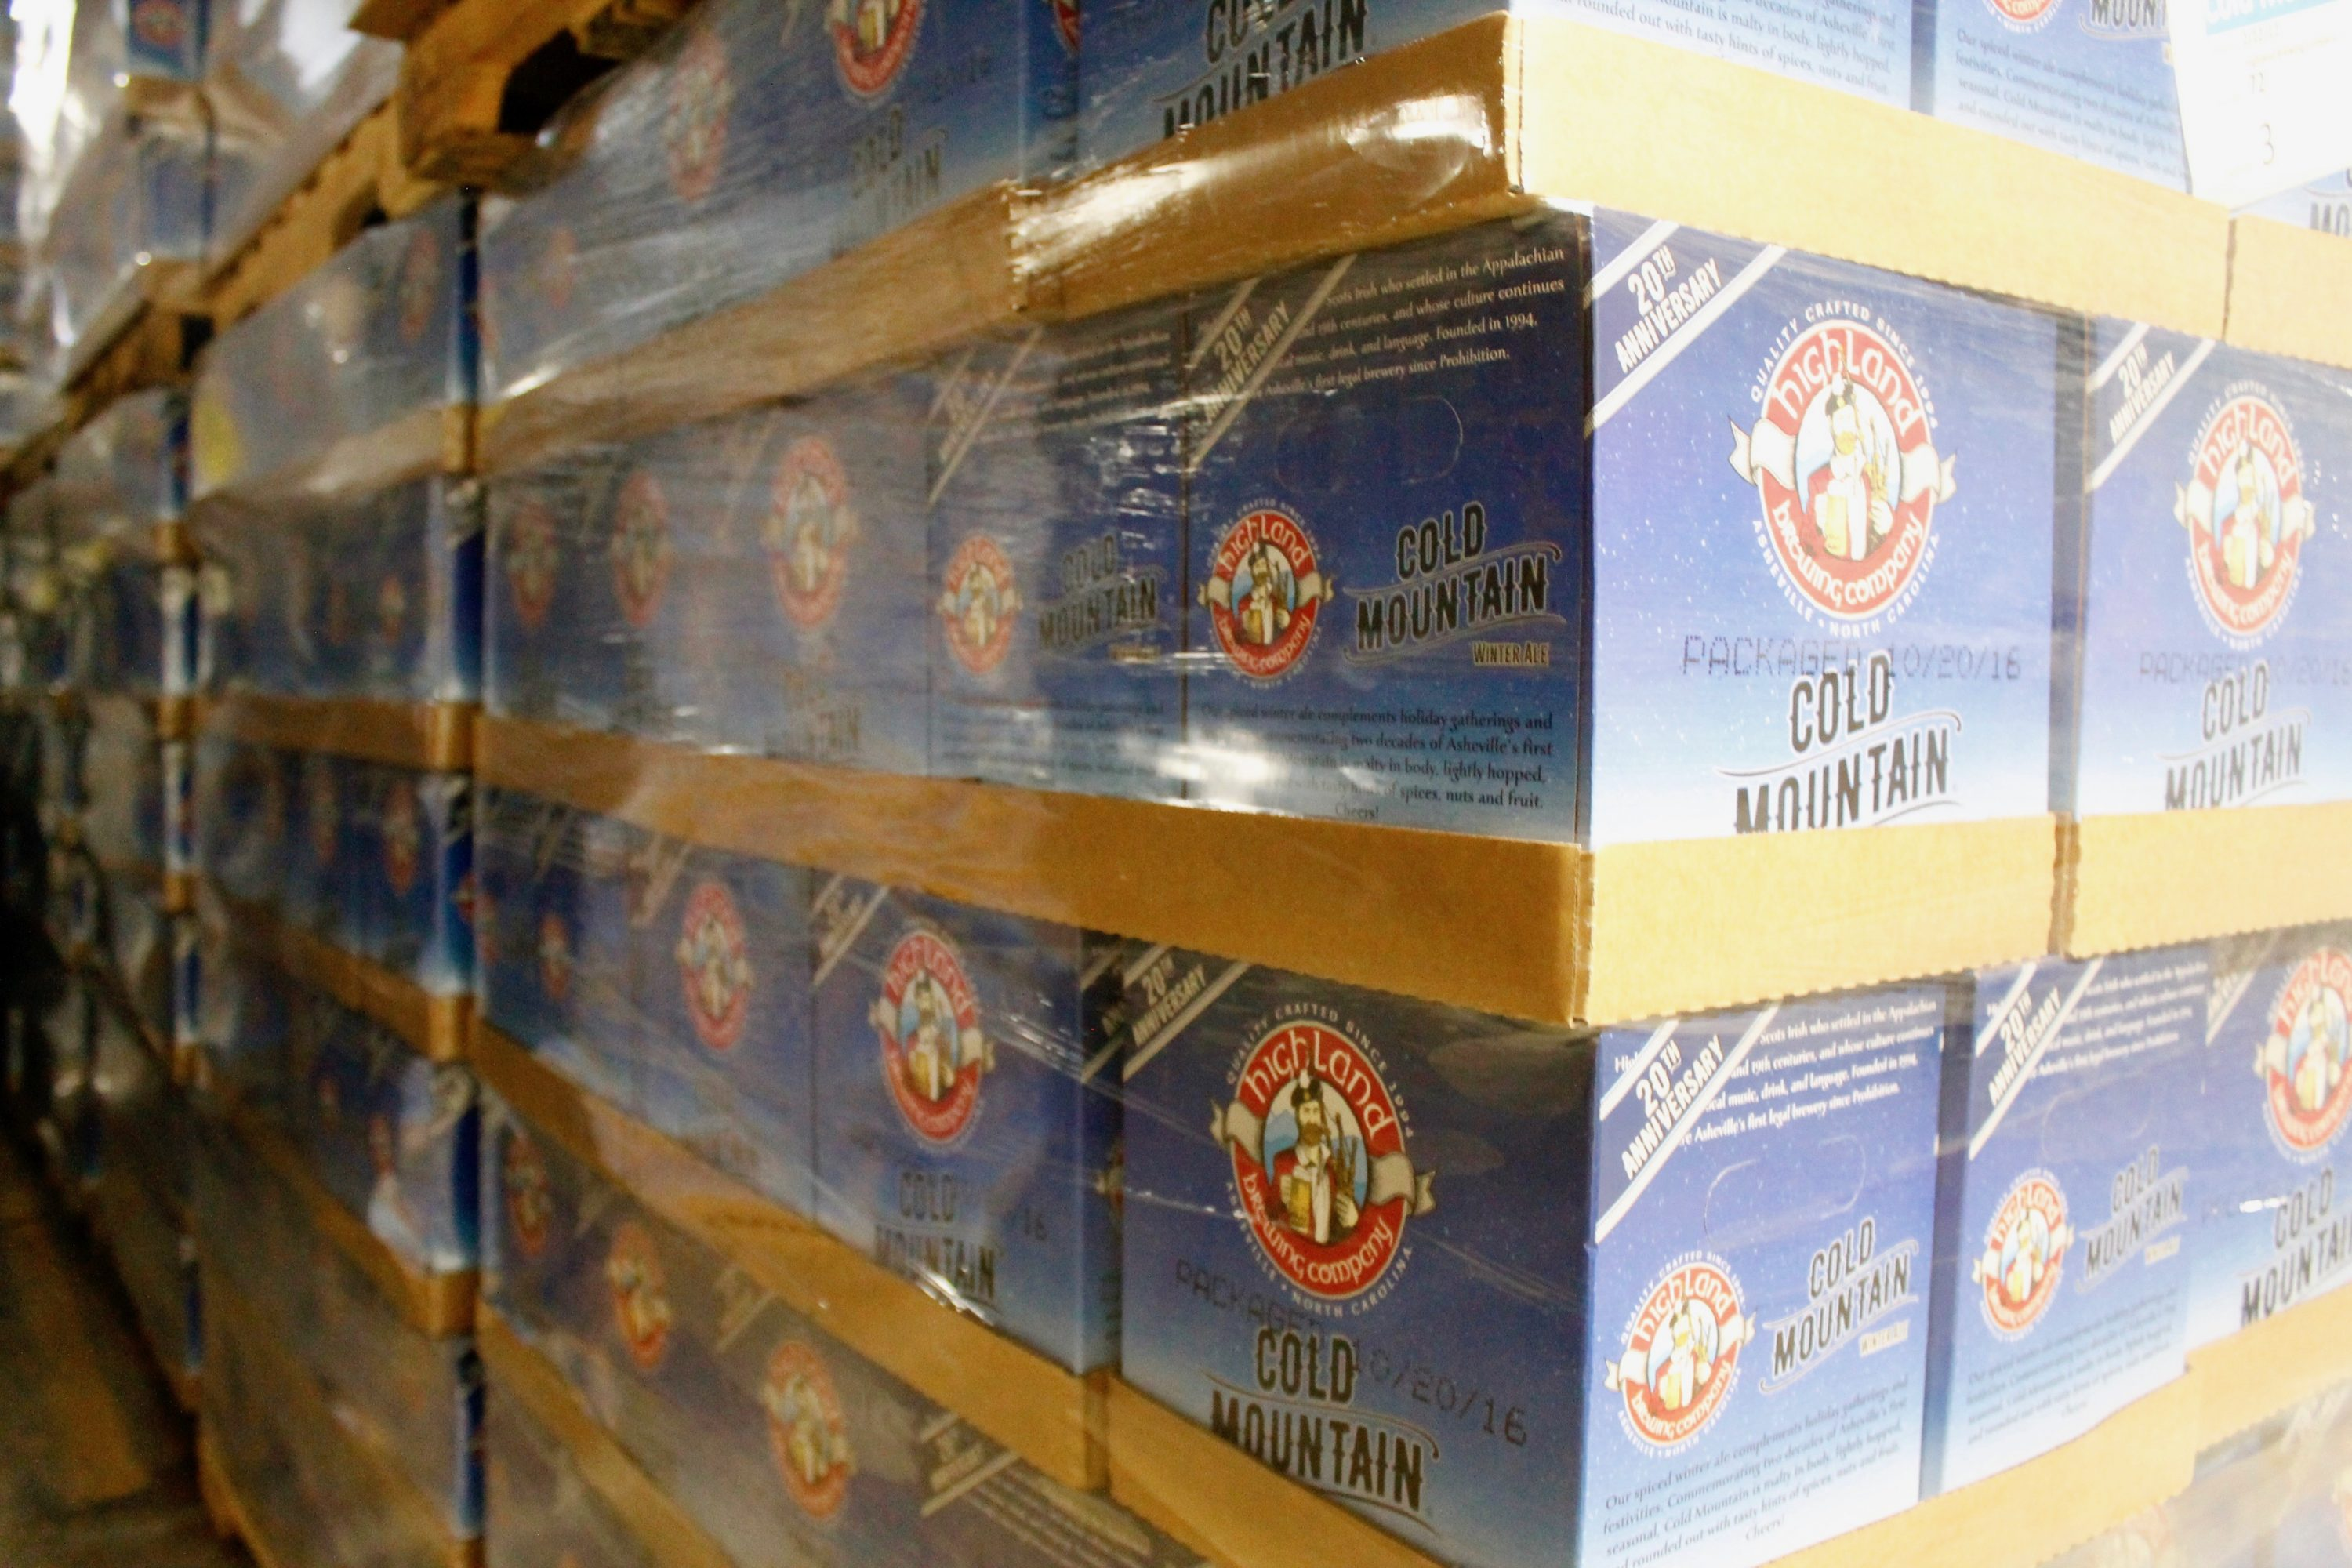 Cases of Cold Mountain Winter Ale